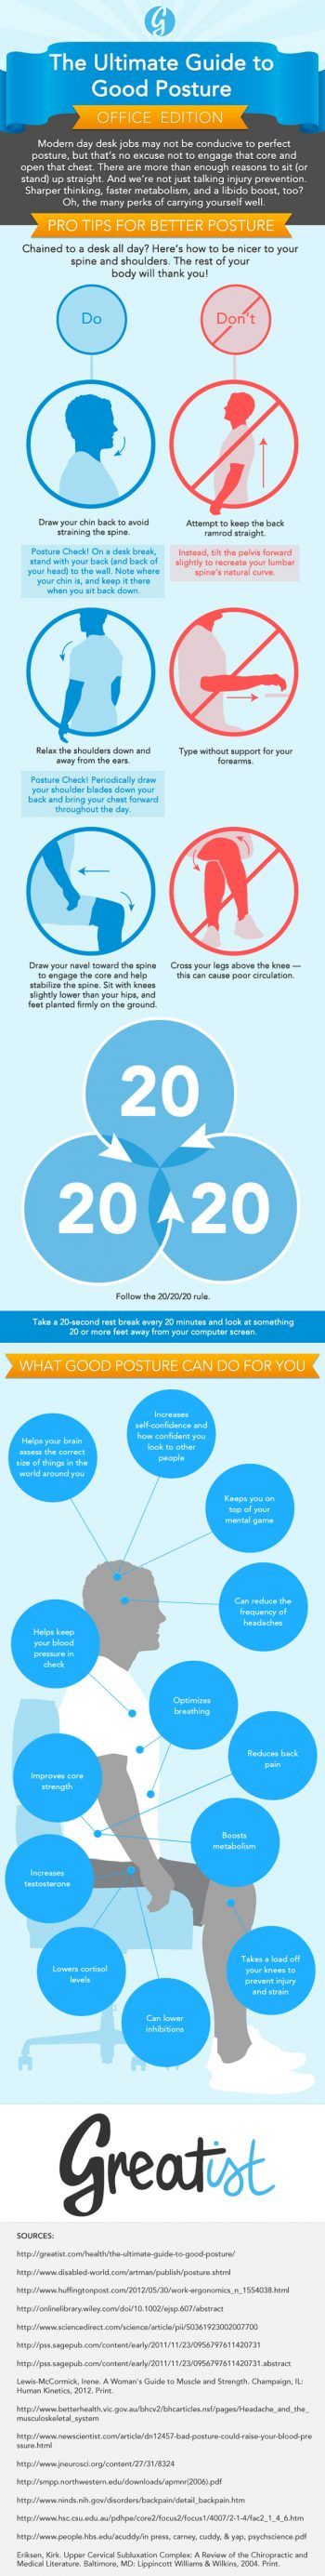 Hour after hour, it's hard to maintain good posture on the job. But sitting tall can mean a healthy boost from head to toe. Get to know the benefits of good posture on the job — in infographic form.